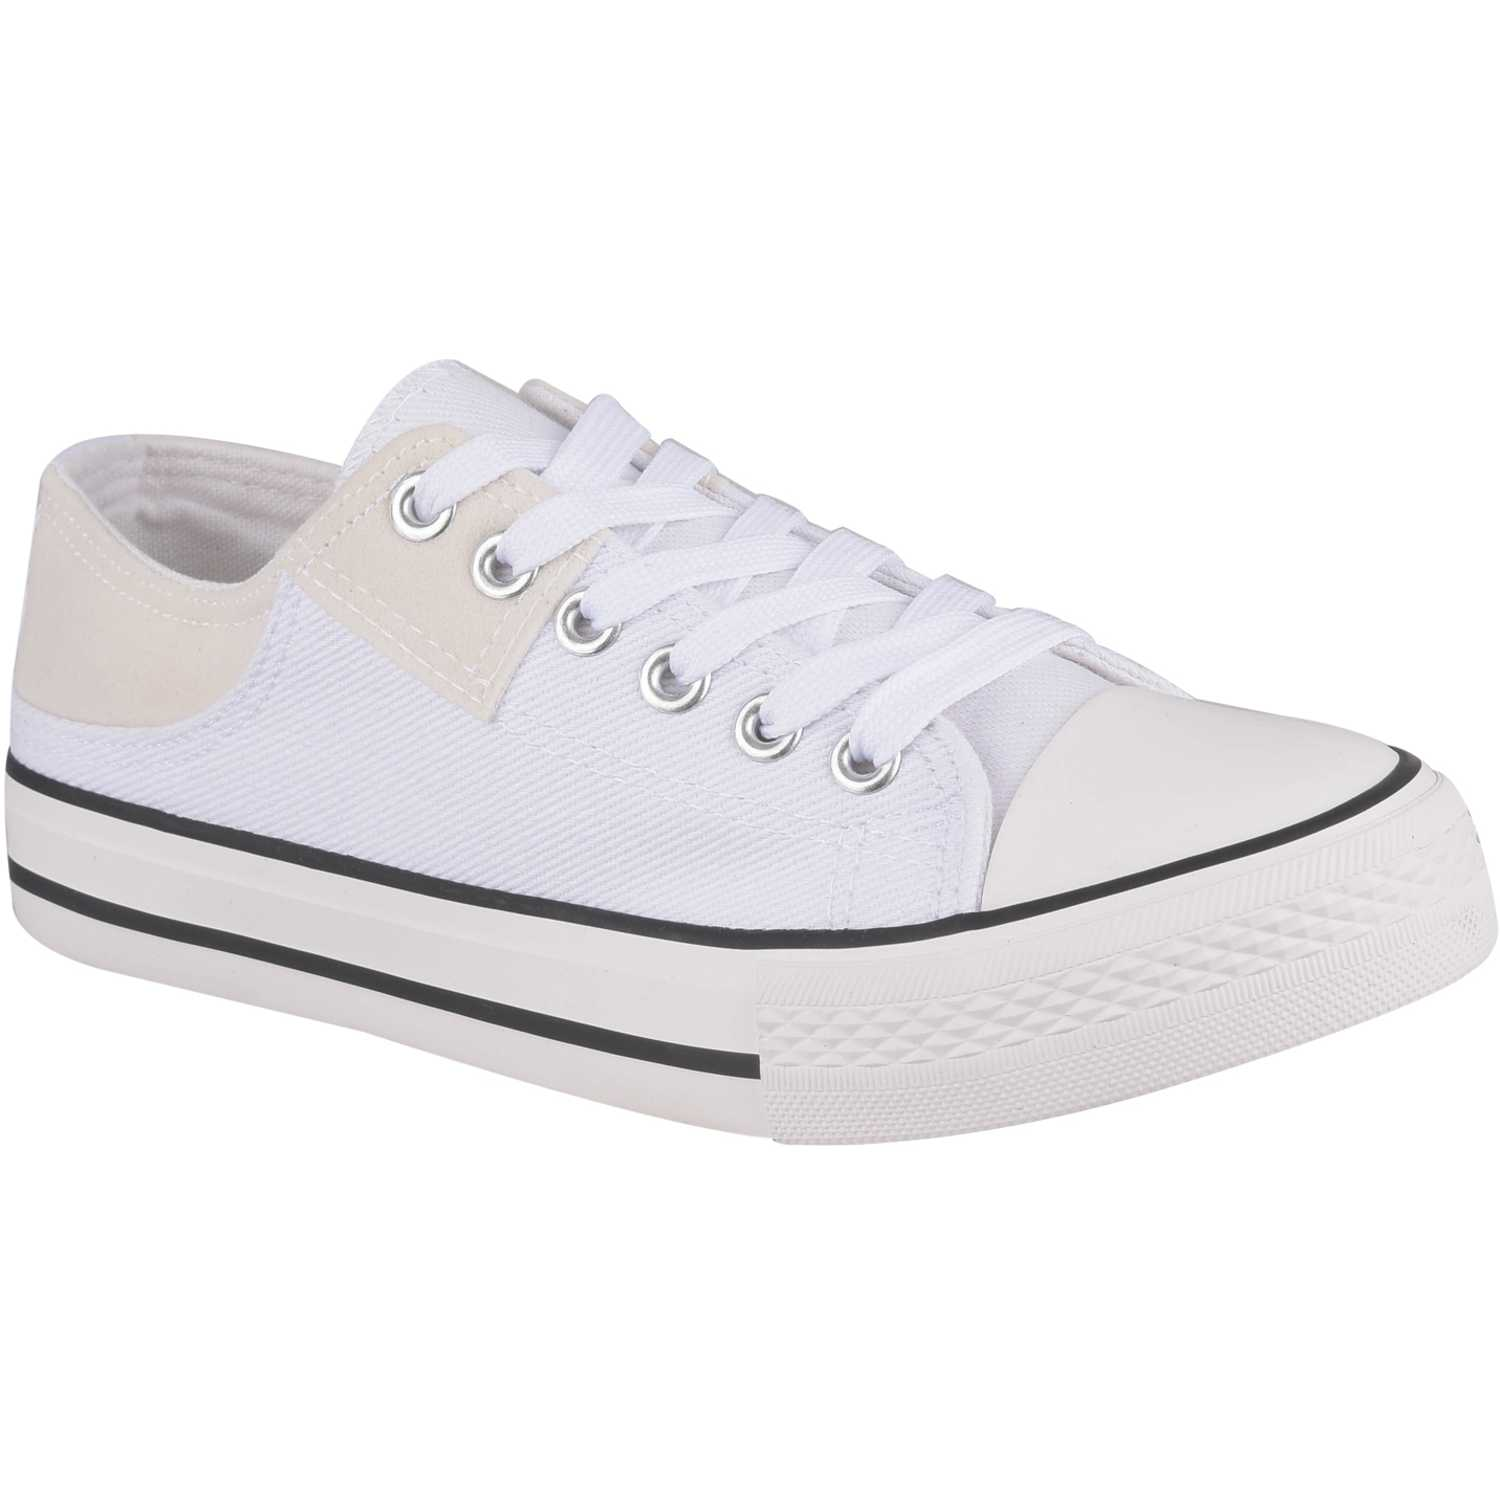 Just4u zc 013 Blanco Zapatillas Fashion